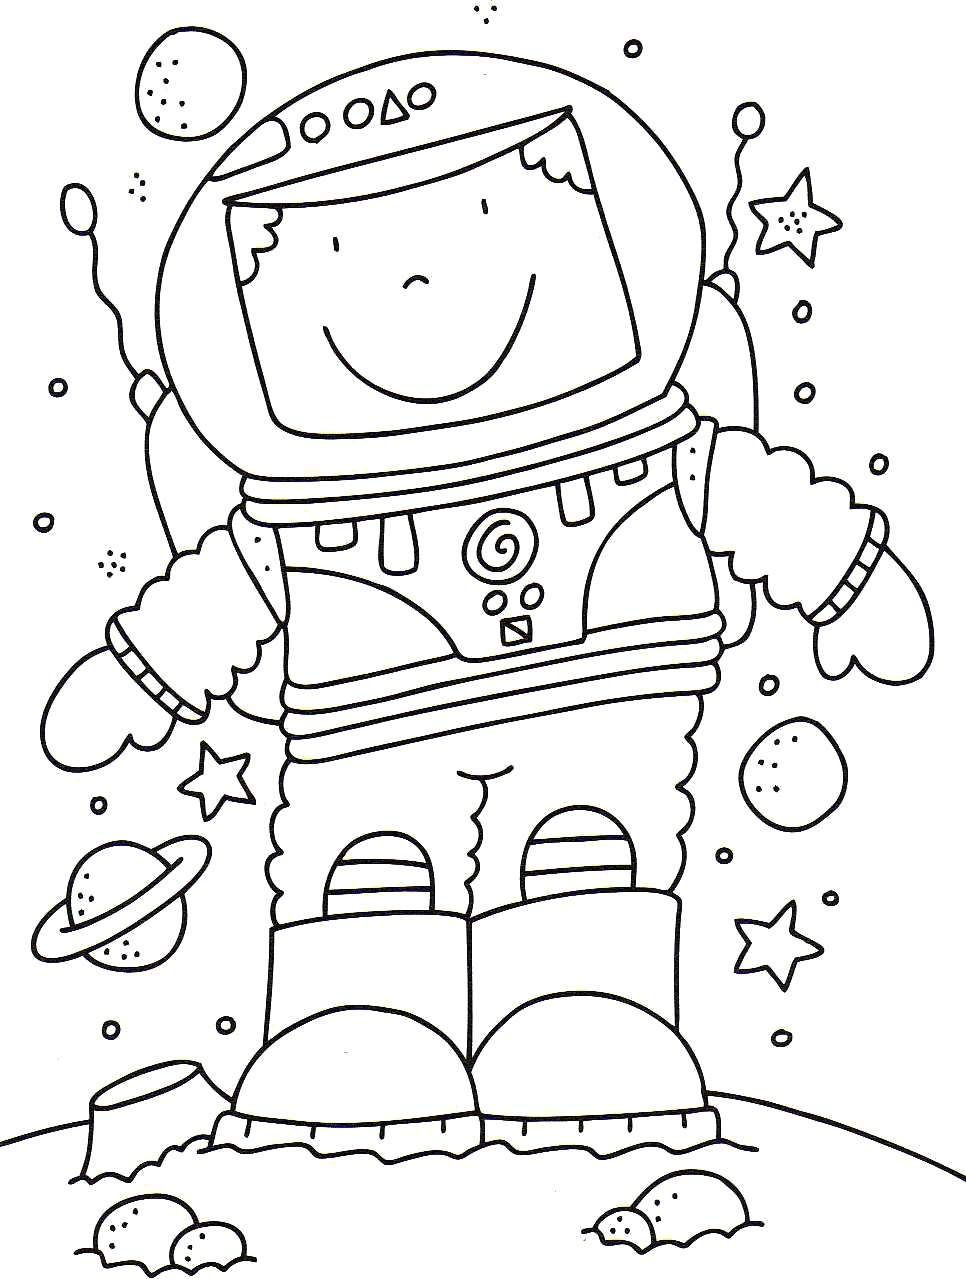 Astronaut Coloring Pages Google Search Space Coloring Pages